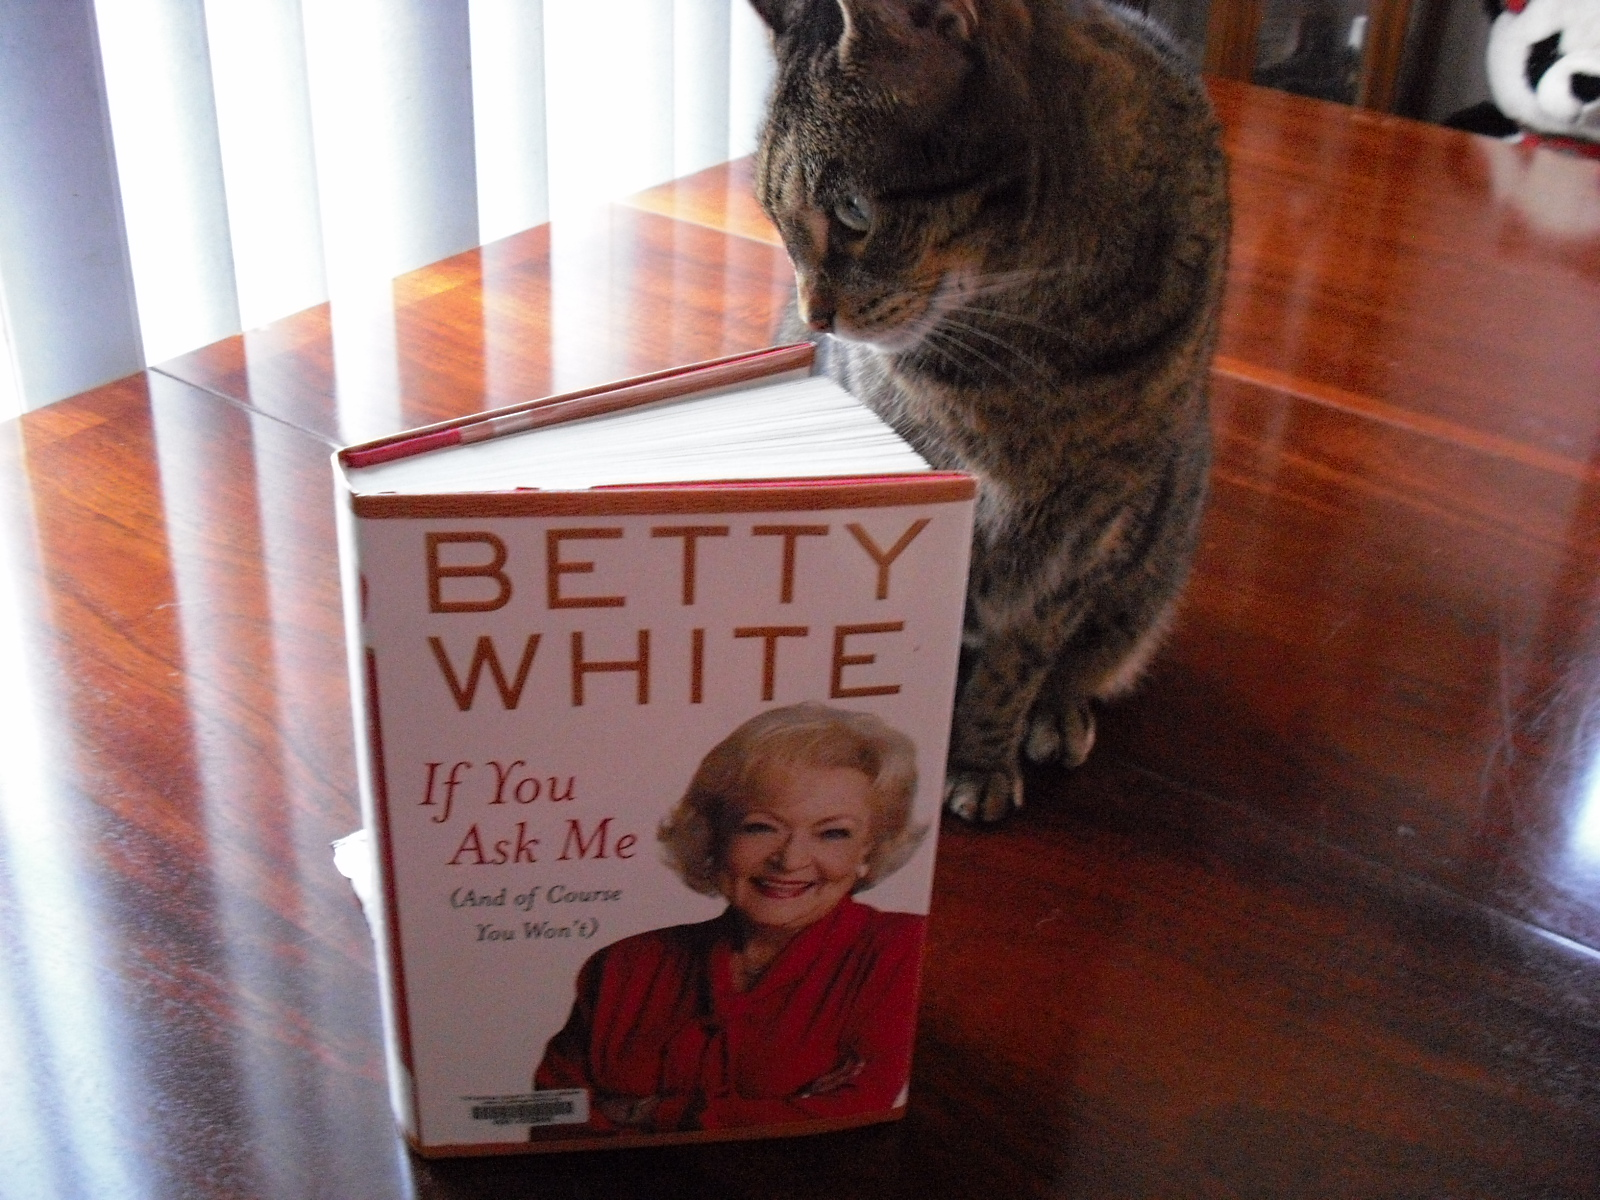 Betty White If You Ask Me Youtube